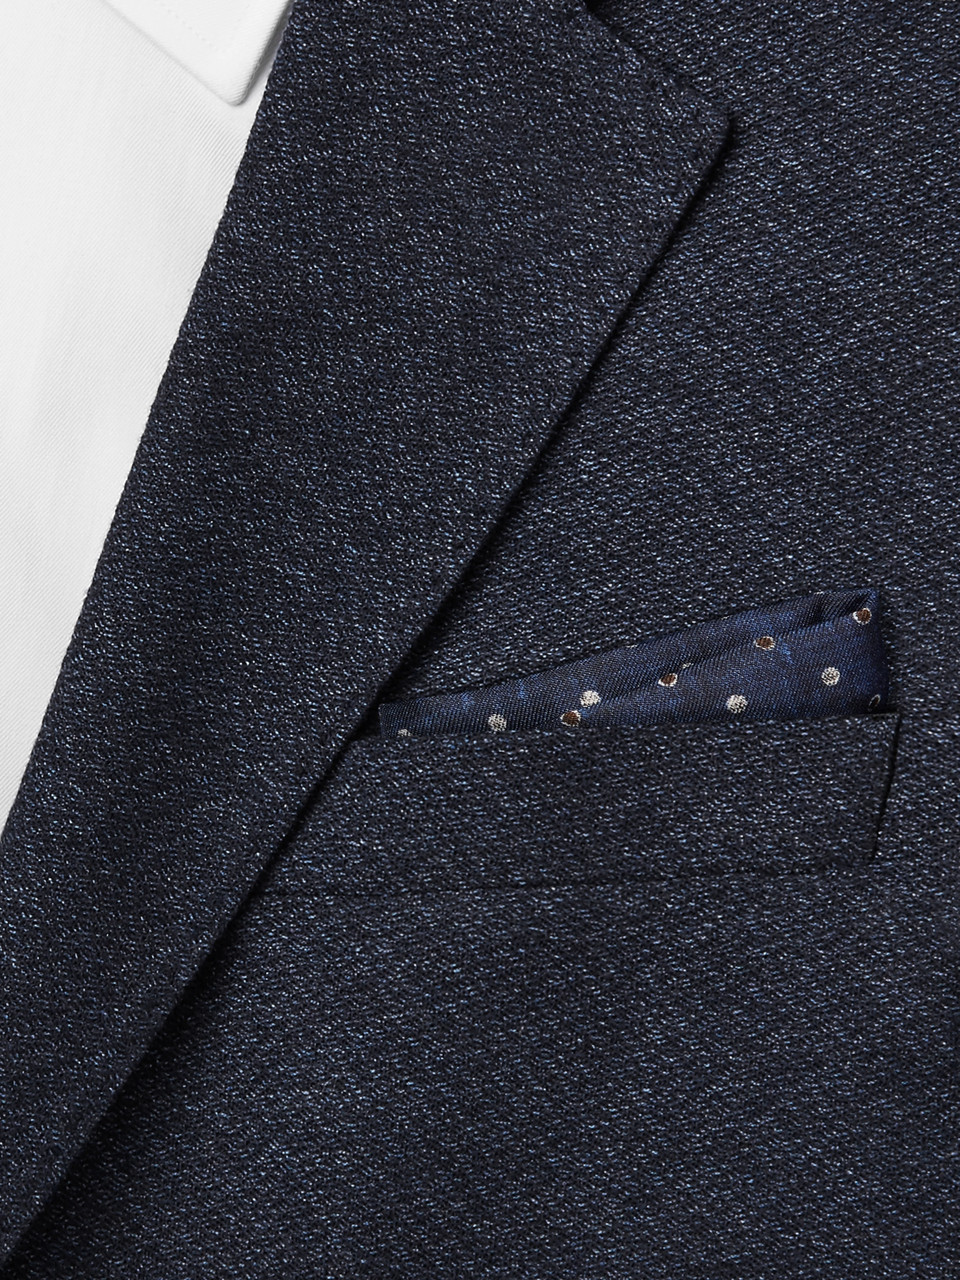 Brunello Cucinelli Reversible Printed Silk and Cotton-Blend Pocket Square